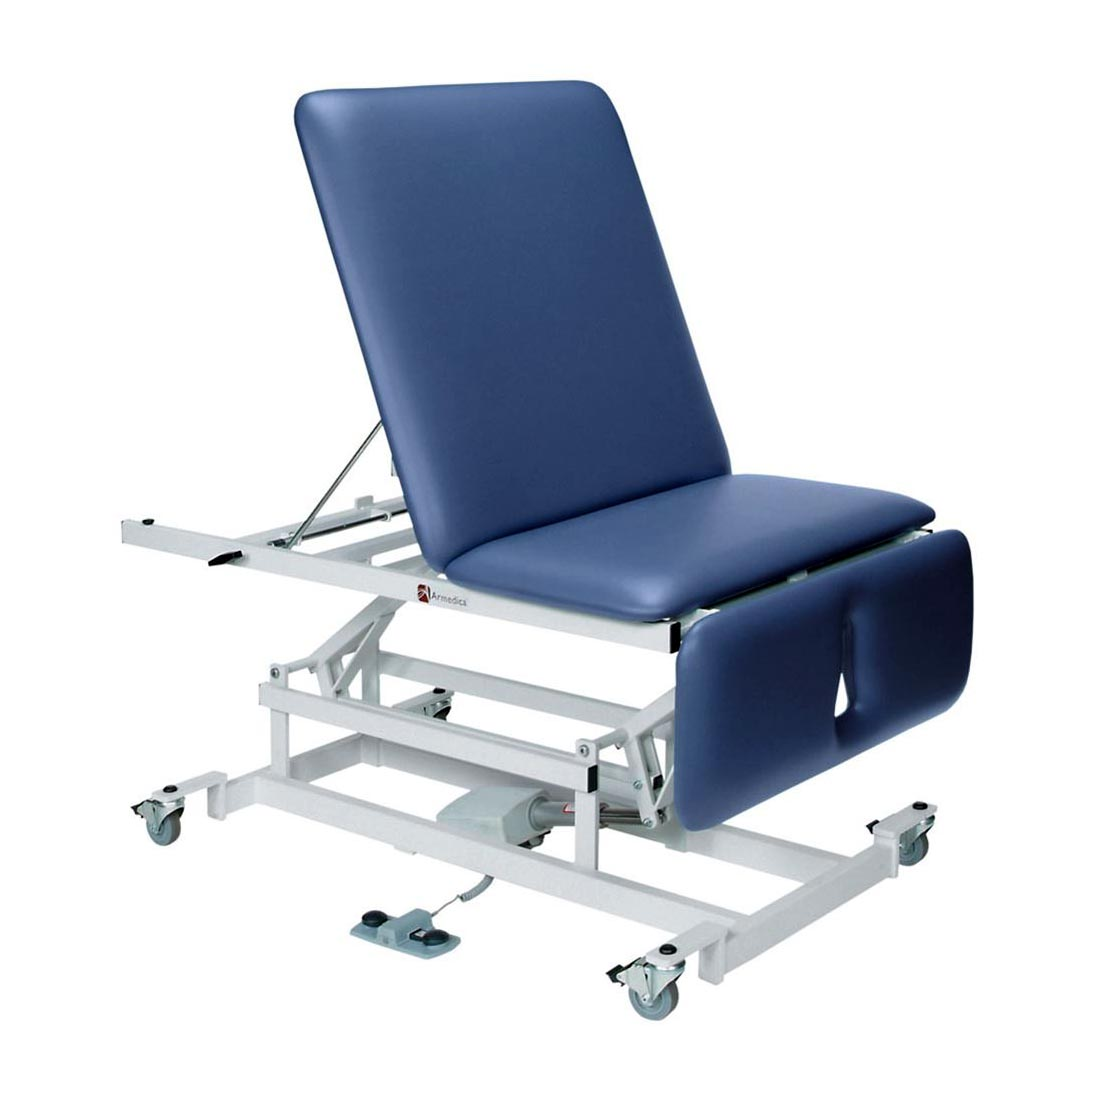 Armedica AM-368 treatment table